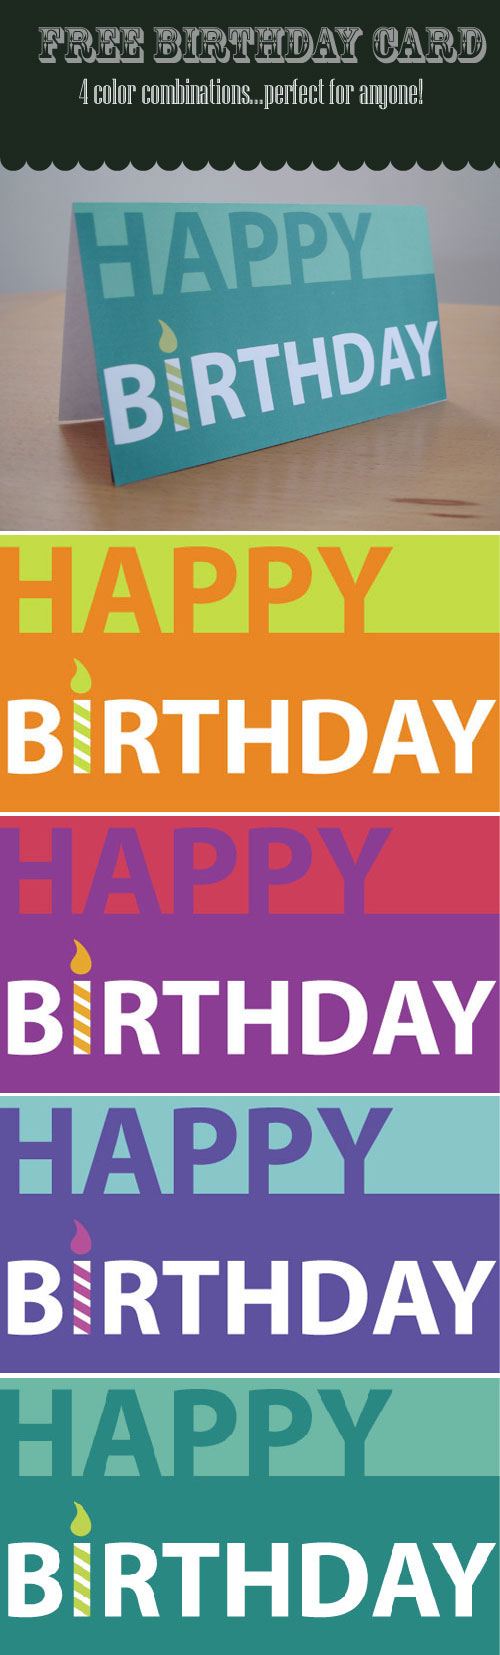 free birthday card templates for mac ; 6ee805db2e29dc48ef5f8516e5a2bb66